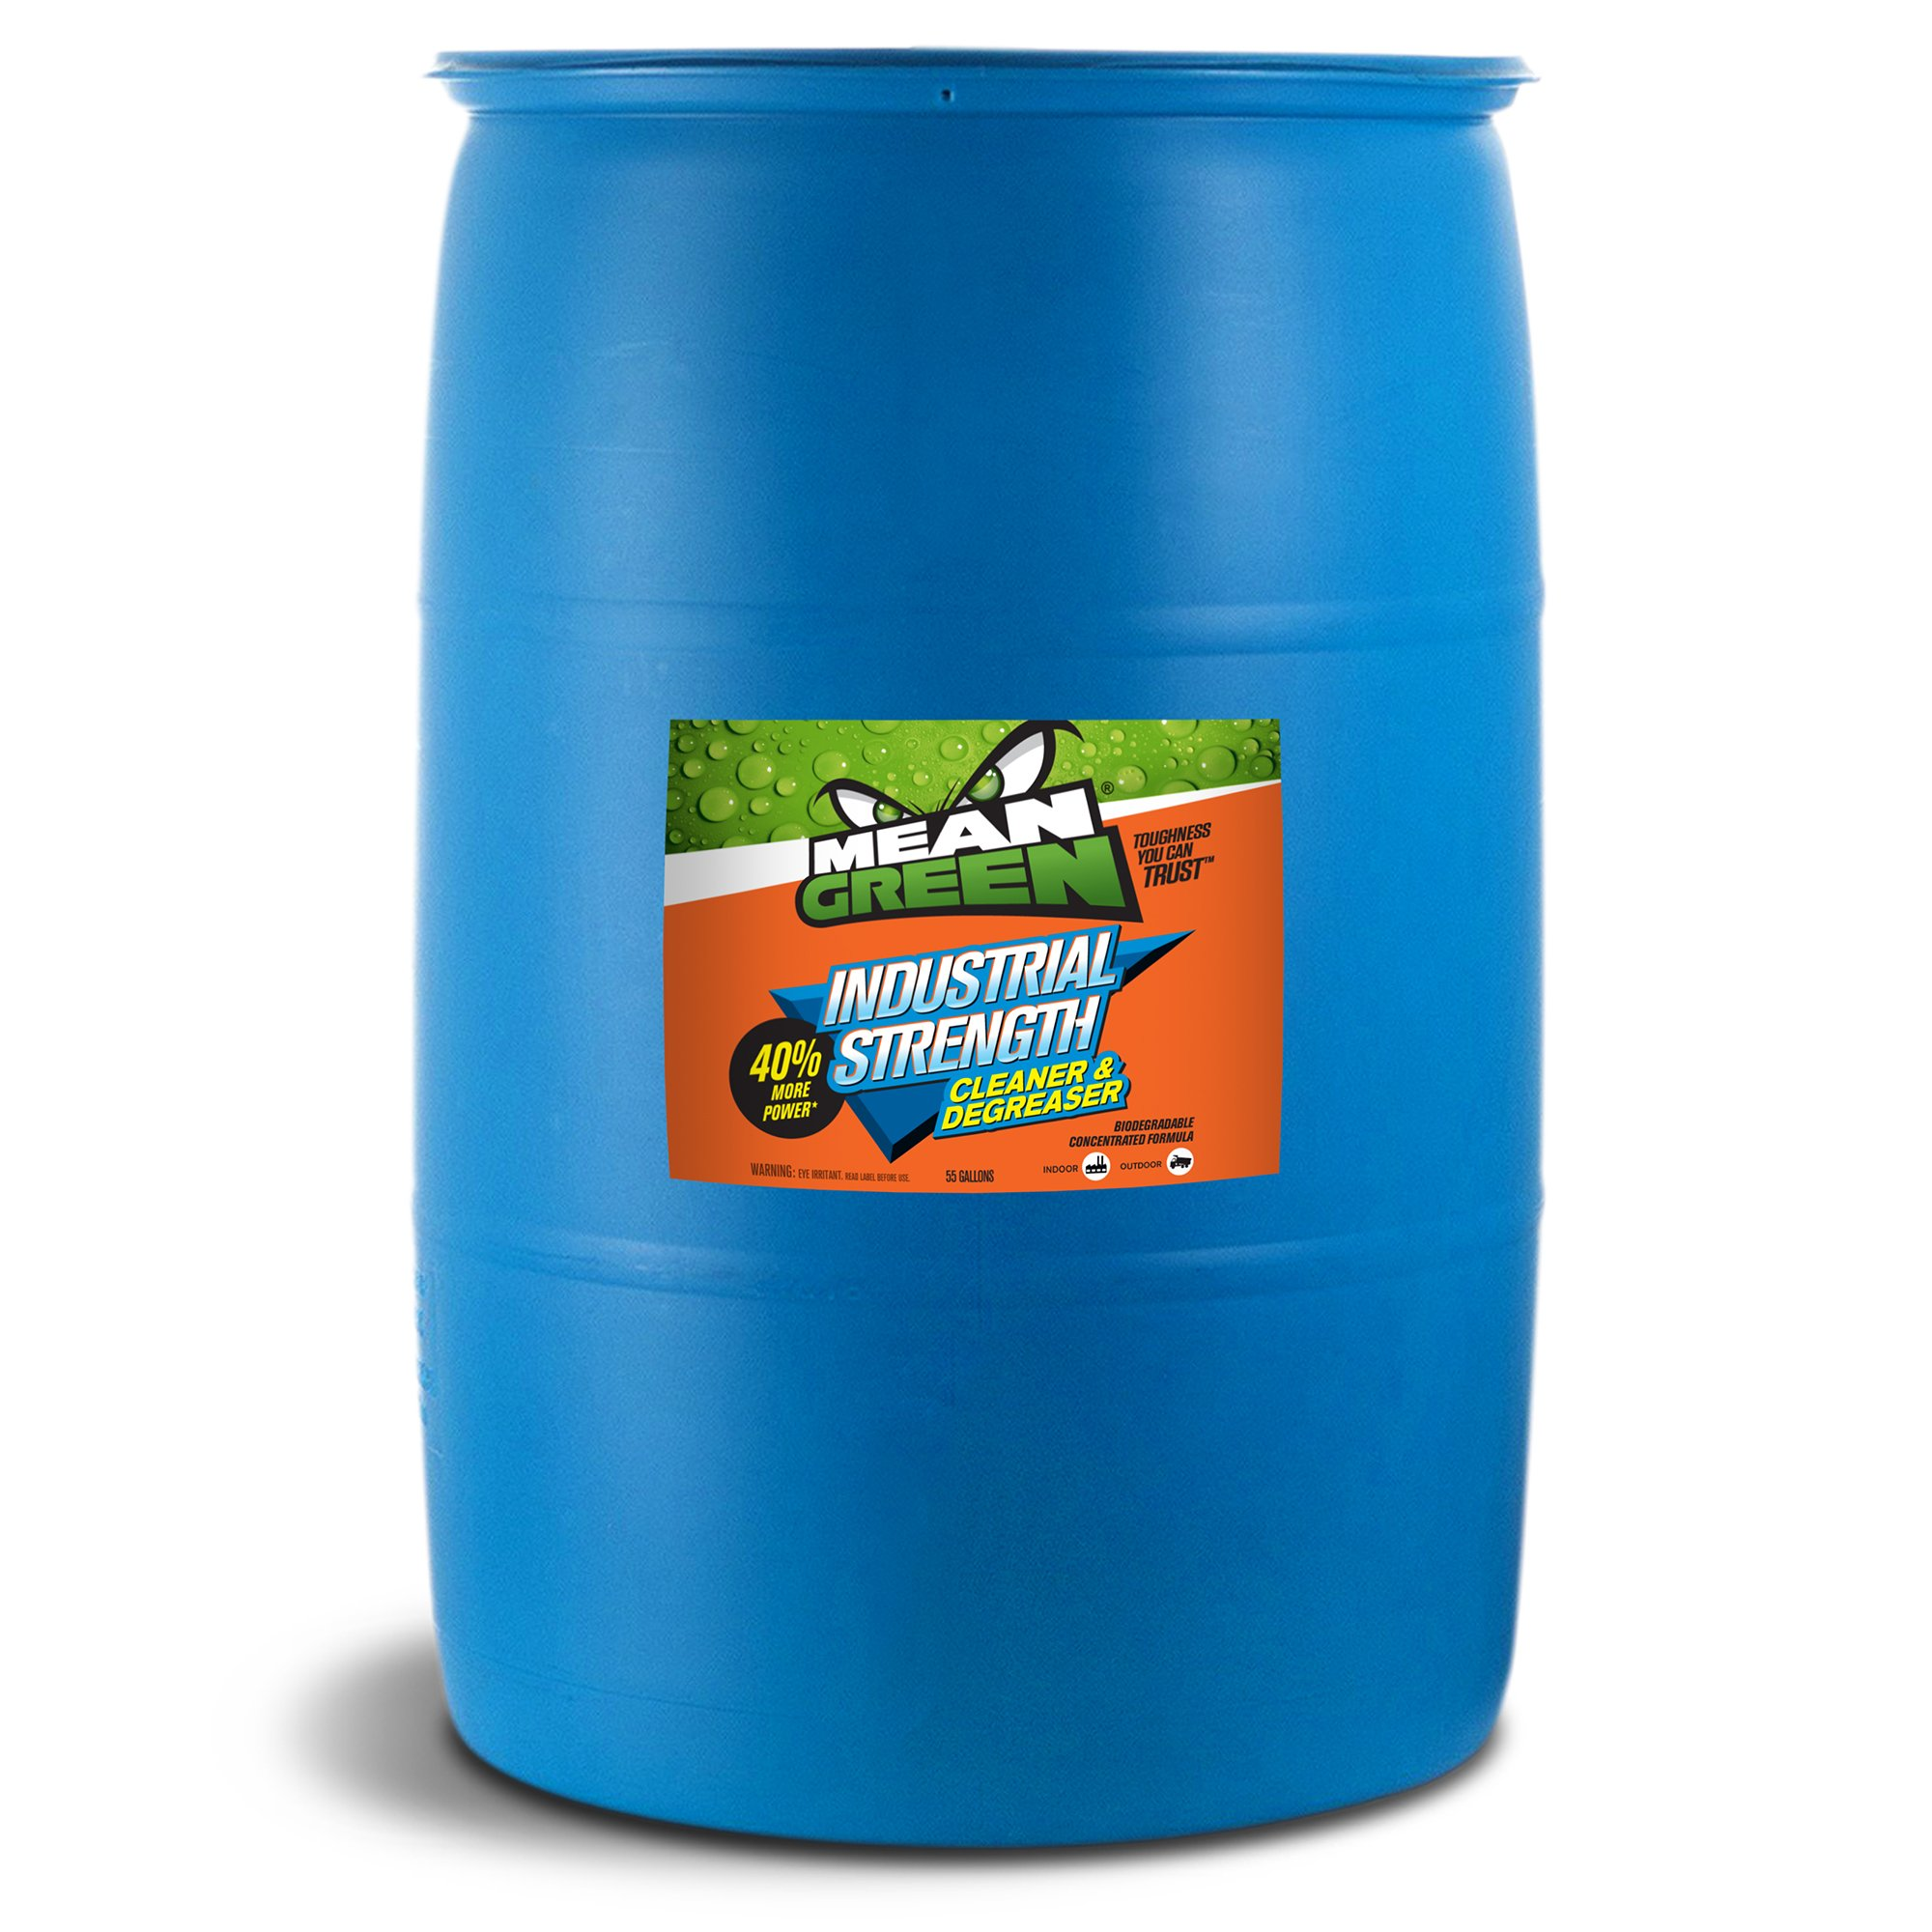 Mean Green Industrial Strength Cleaner & Degreaser (55 gal. Drum) by Mean Green